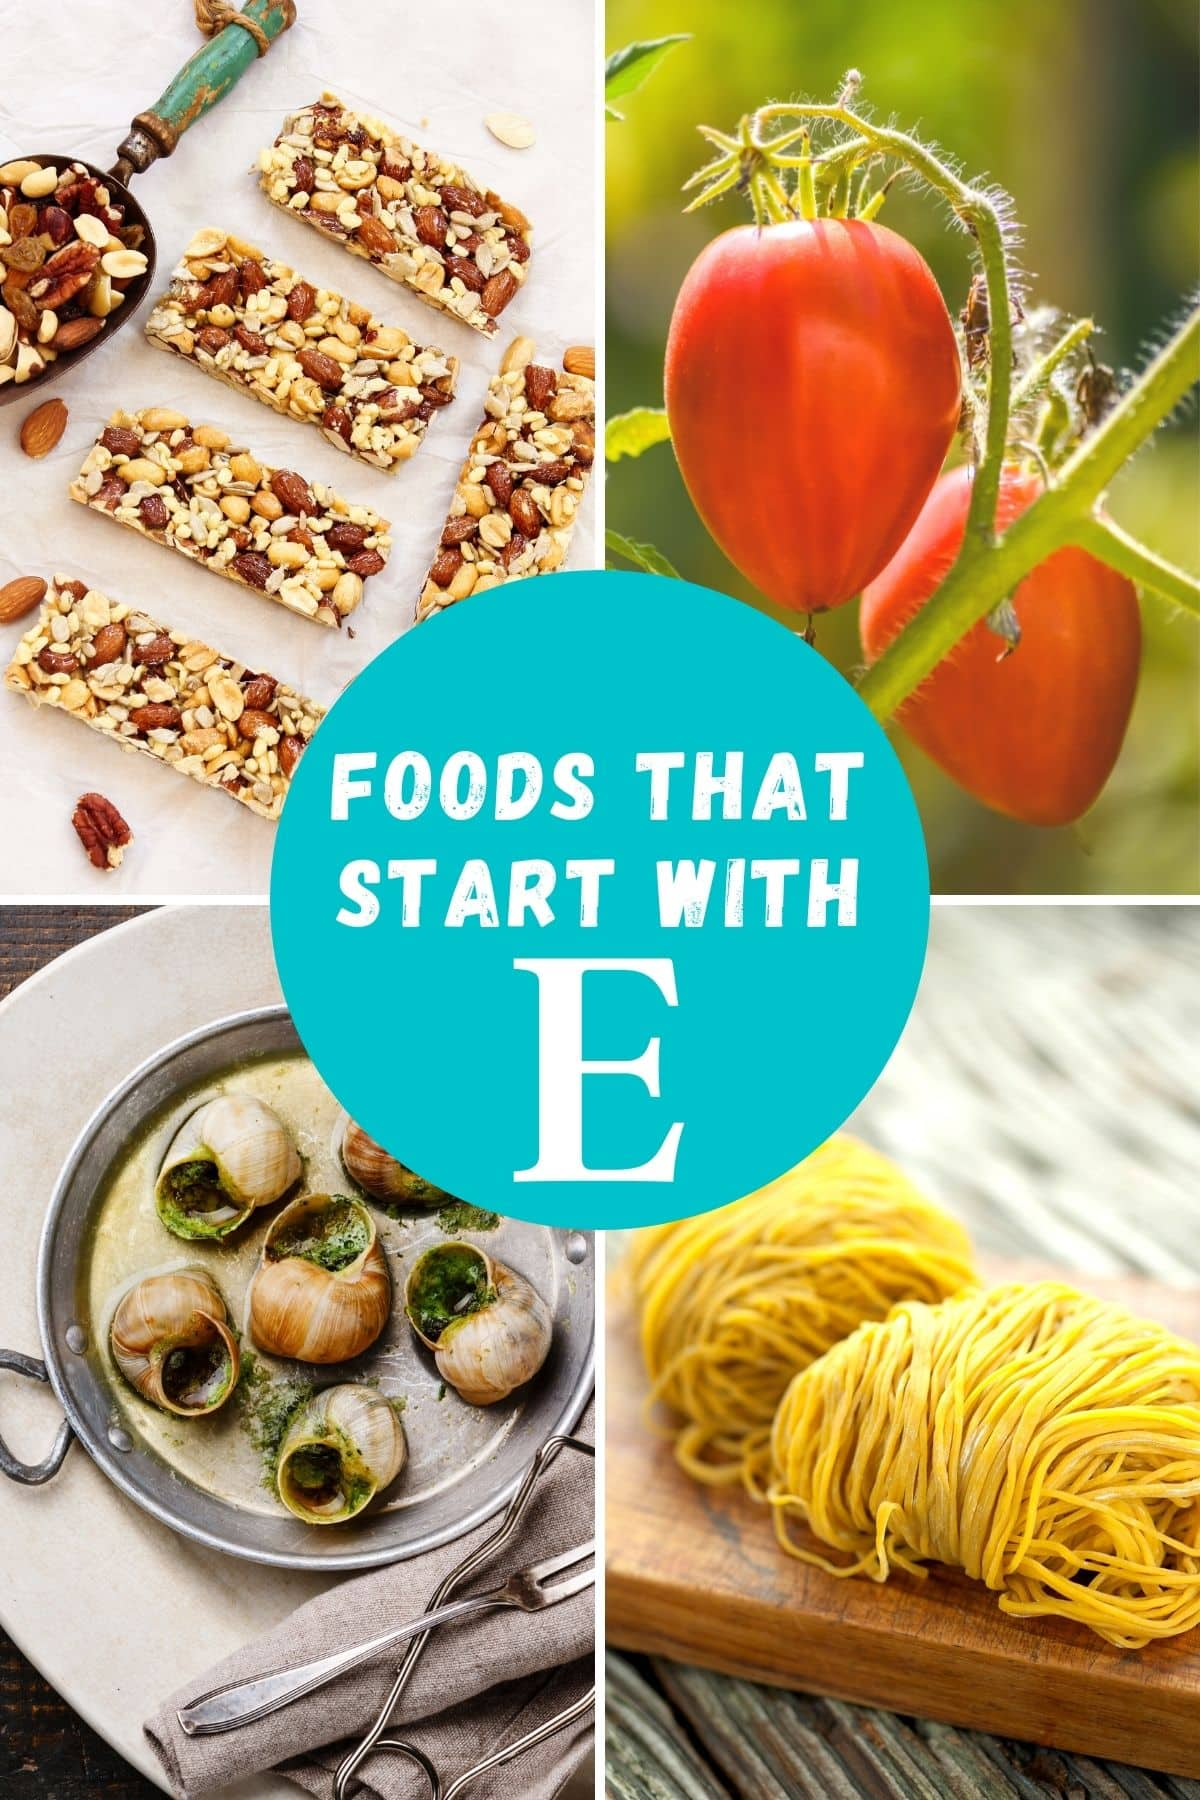 Foods that start with E